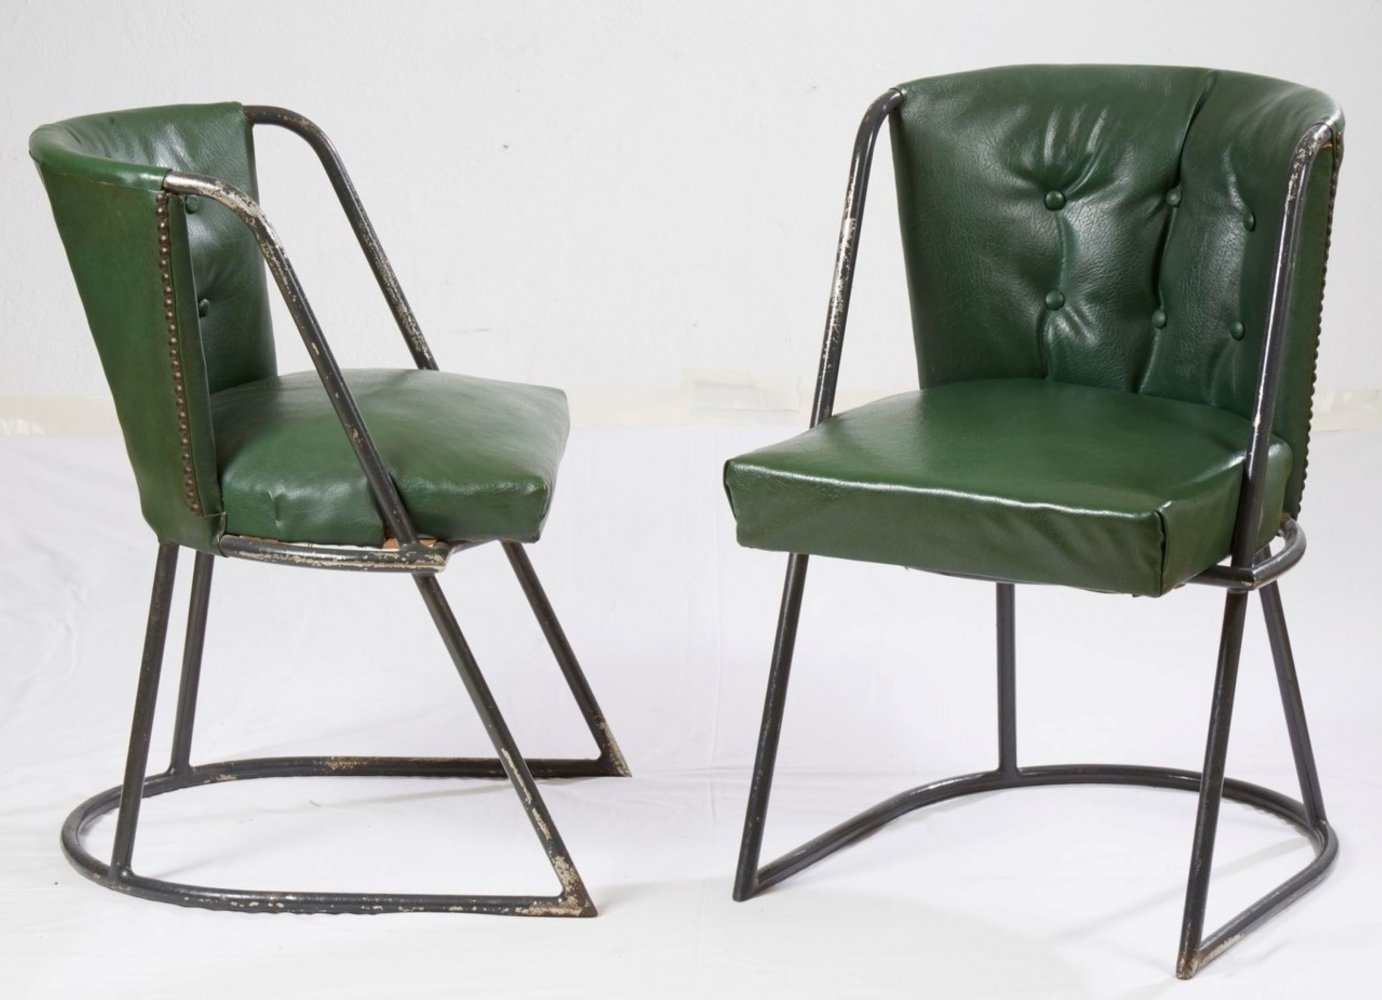 Pair of arm chairs by Louis Sognot & Charlotte Alix, 1930s